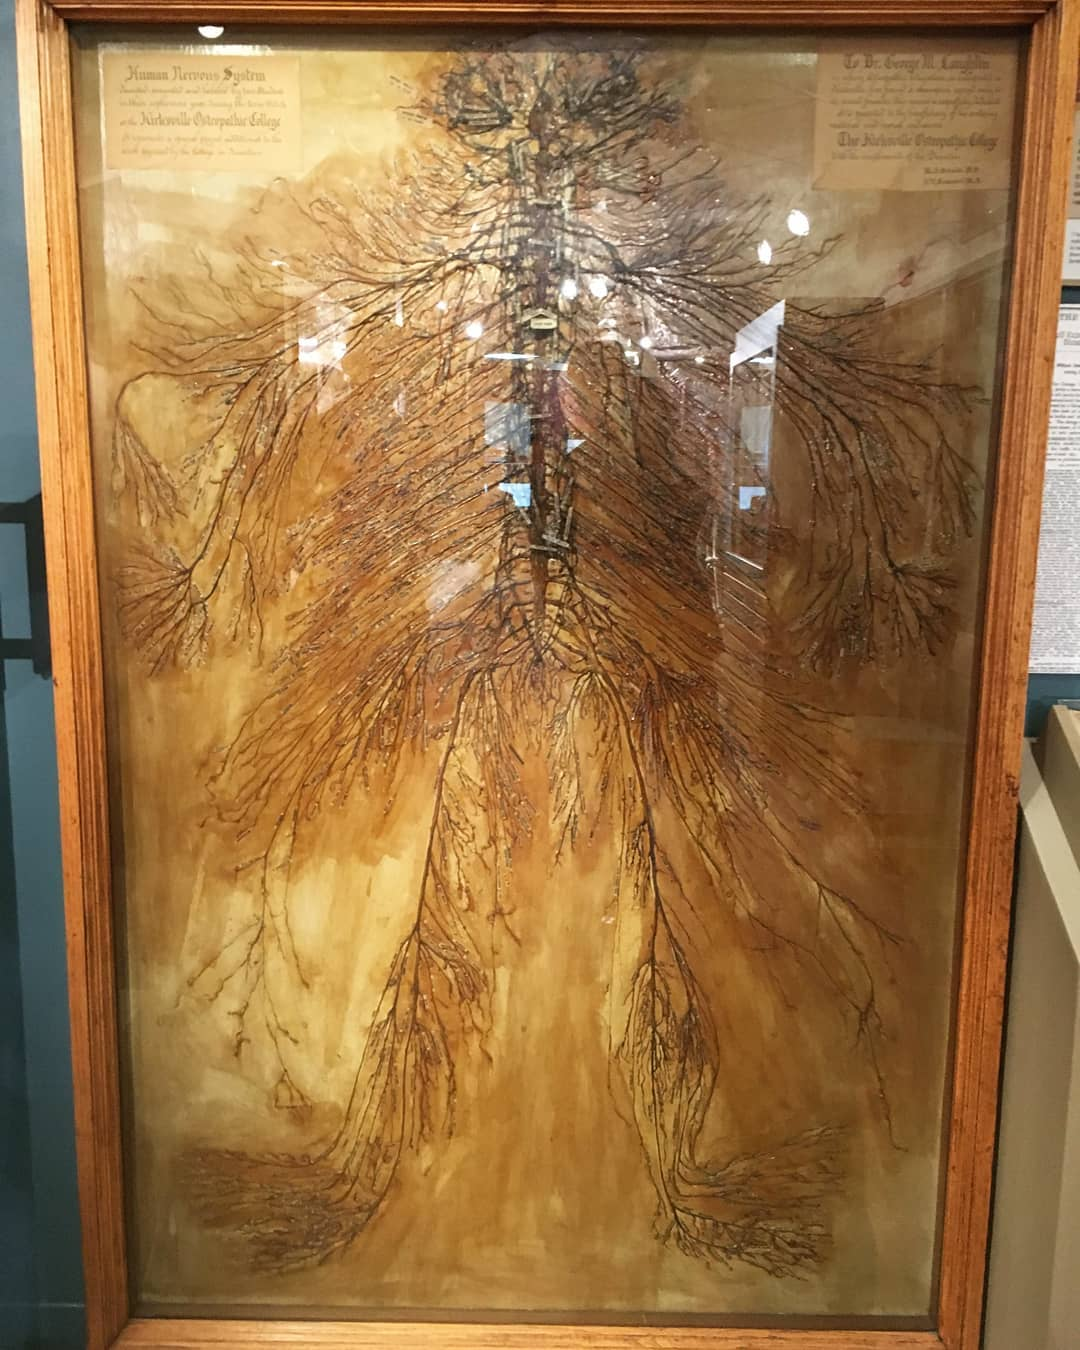 Intact human nervous system that was dissected by 2 medical students in 1925